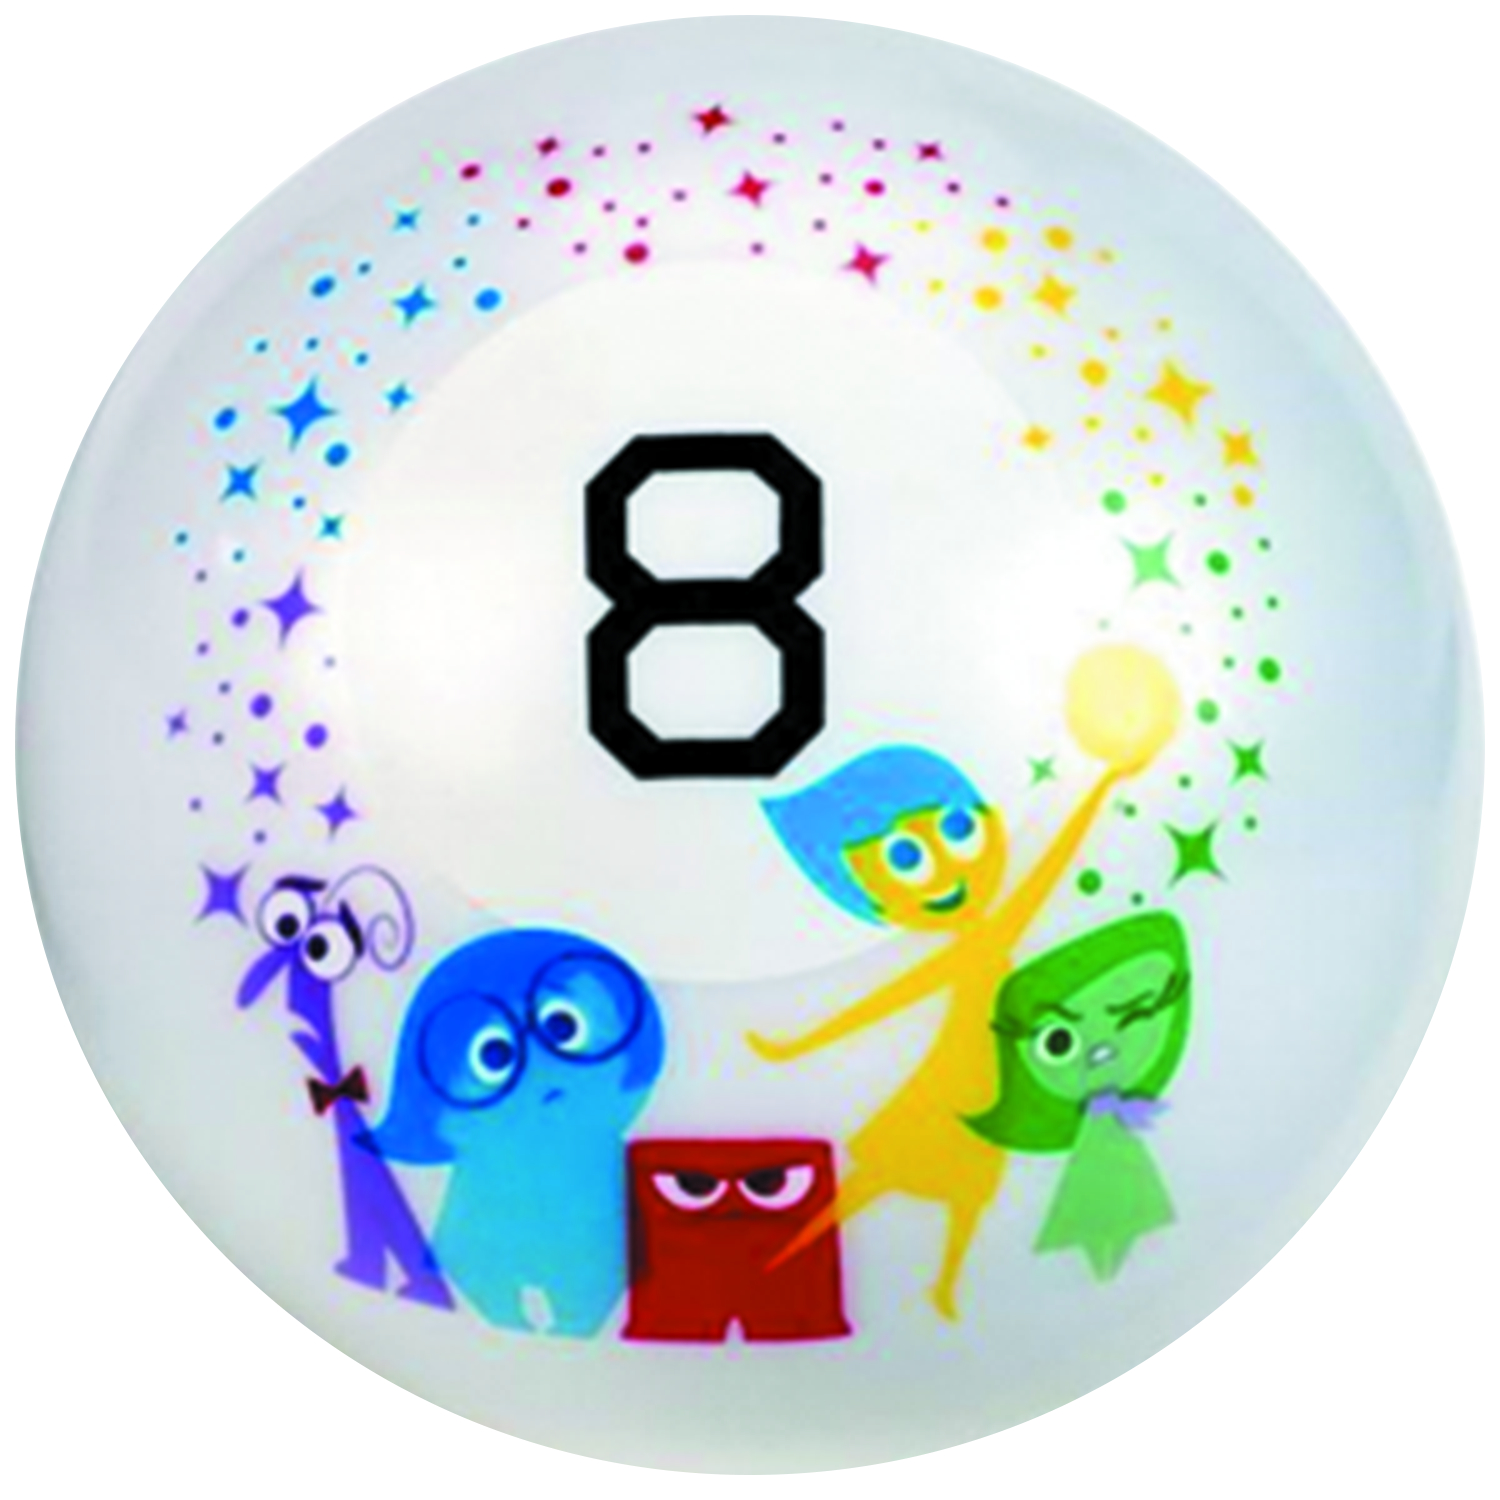 PIXAR INSIDE OUT MAGIC 8-BALL